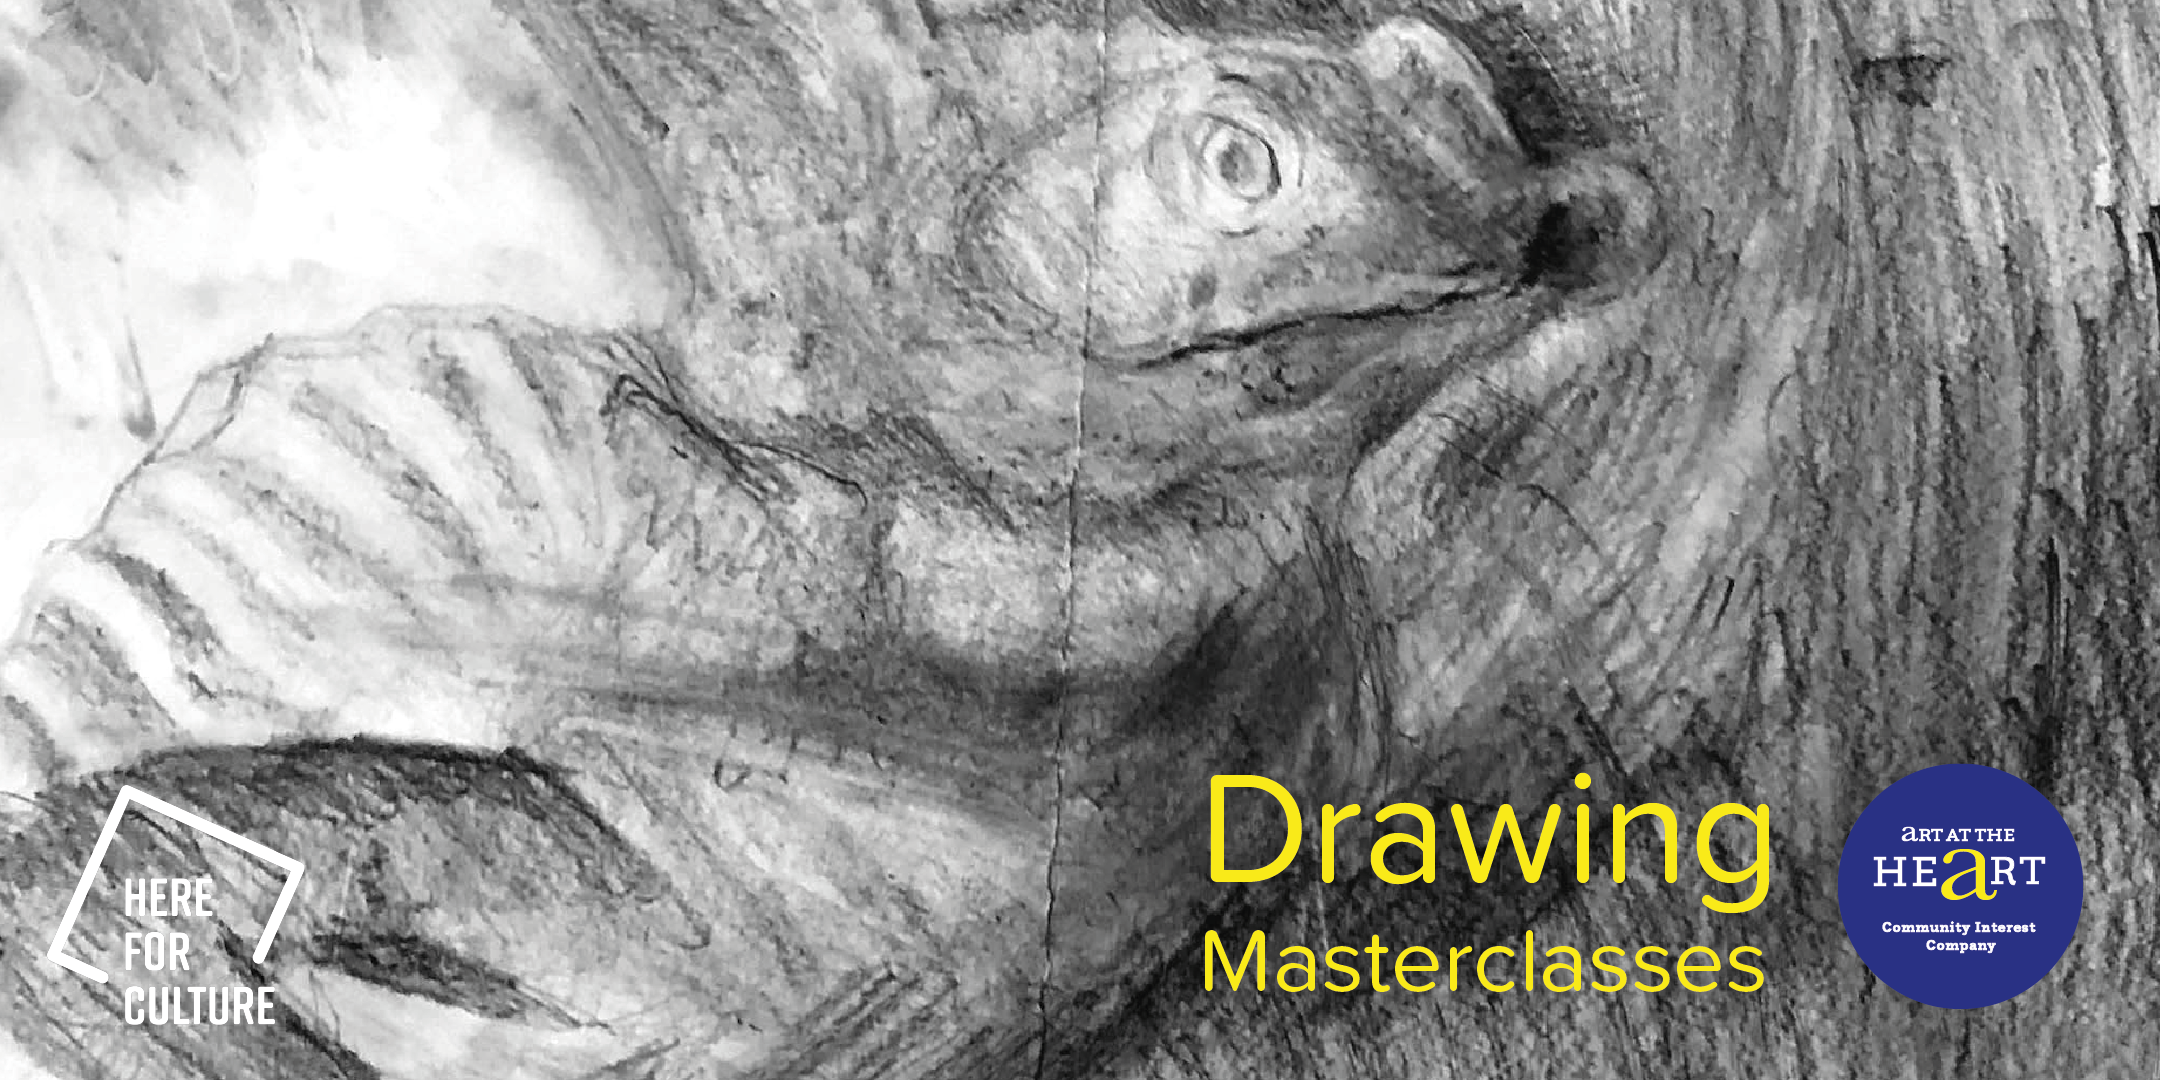 Drawing of a lizard for stage 2 of drawing masterclasses with Art at the Heart CIC